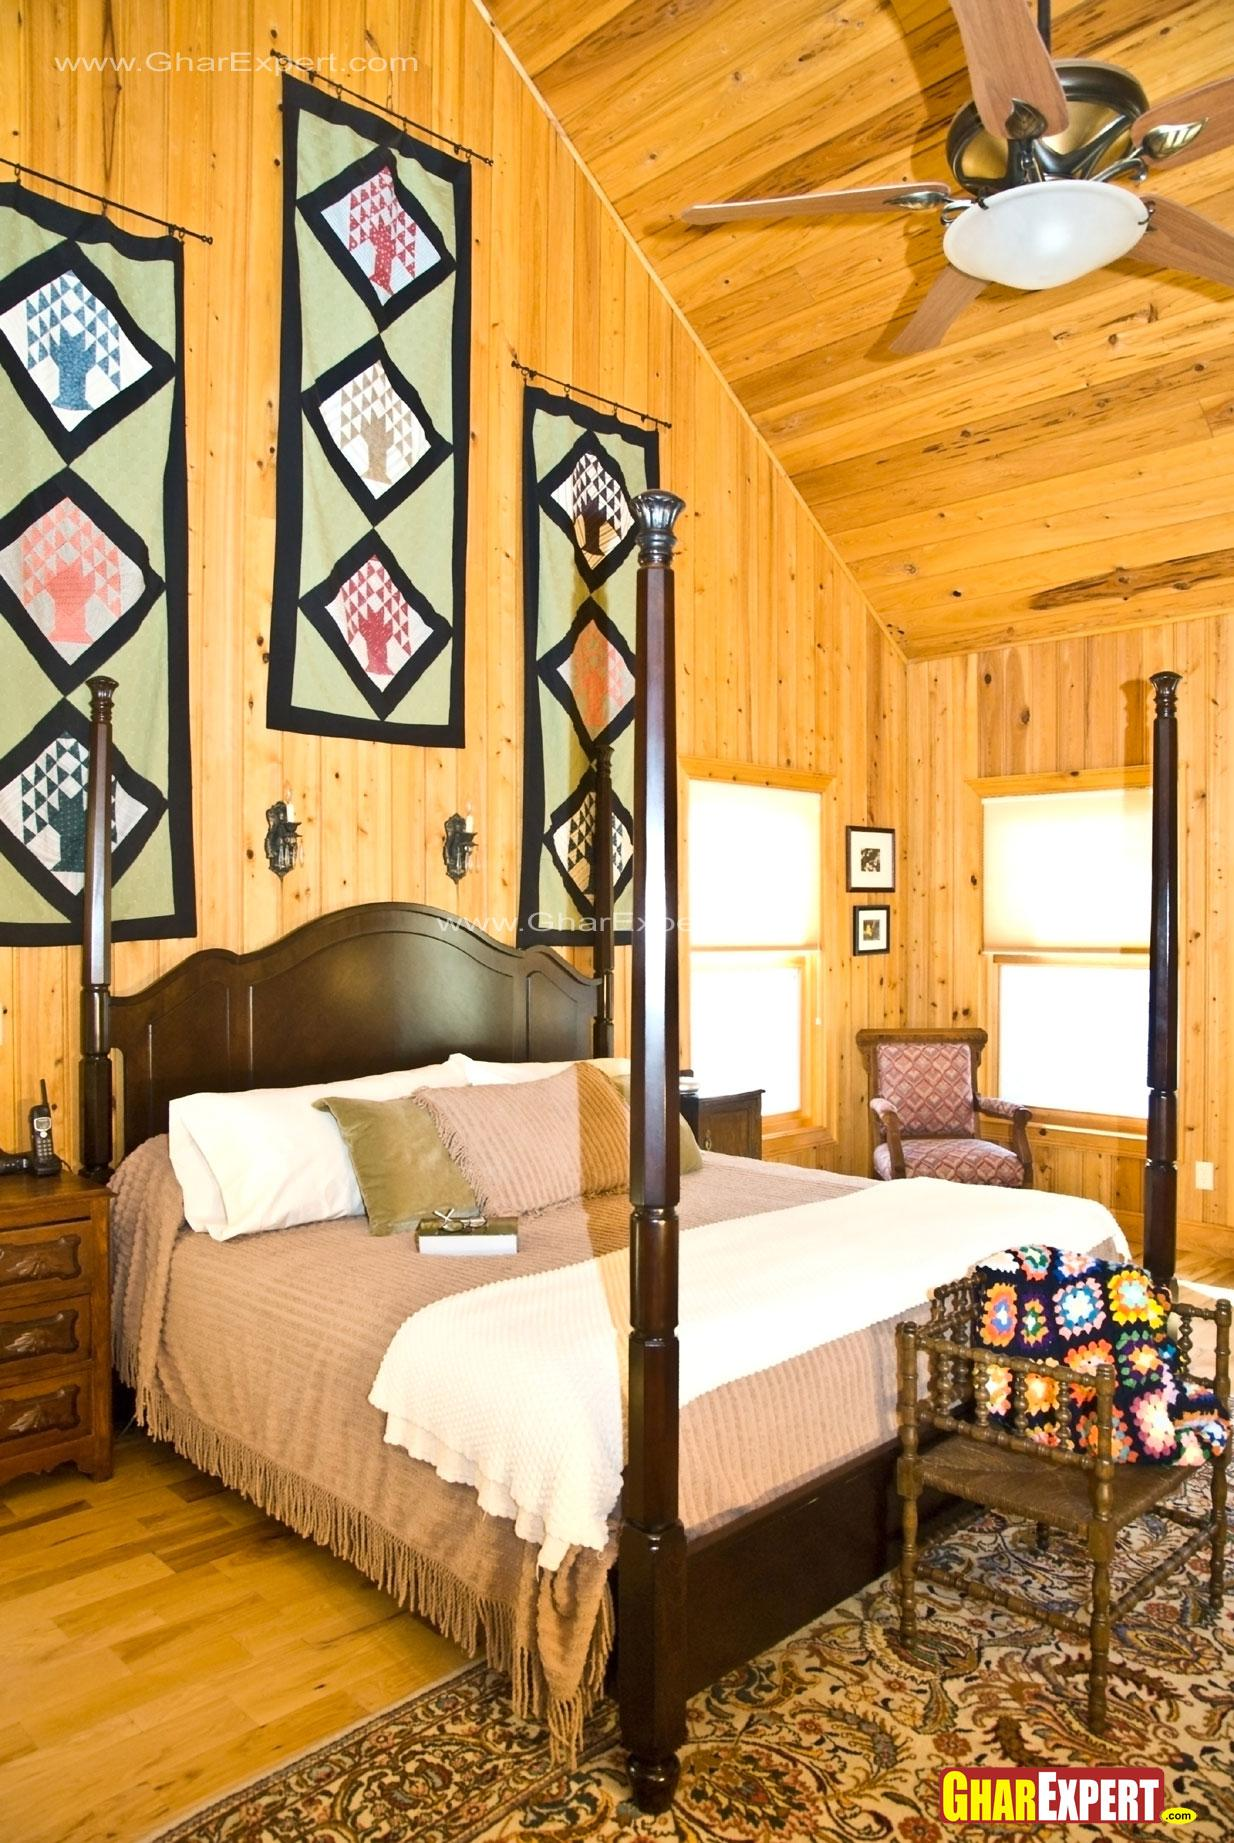 Bedroom with wooden walls and ....